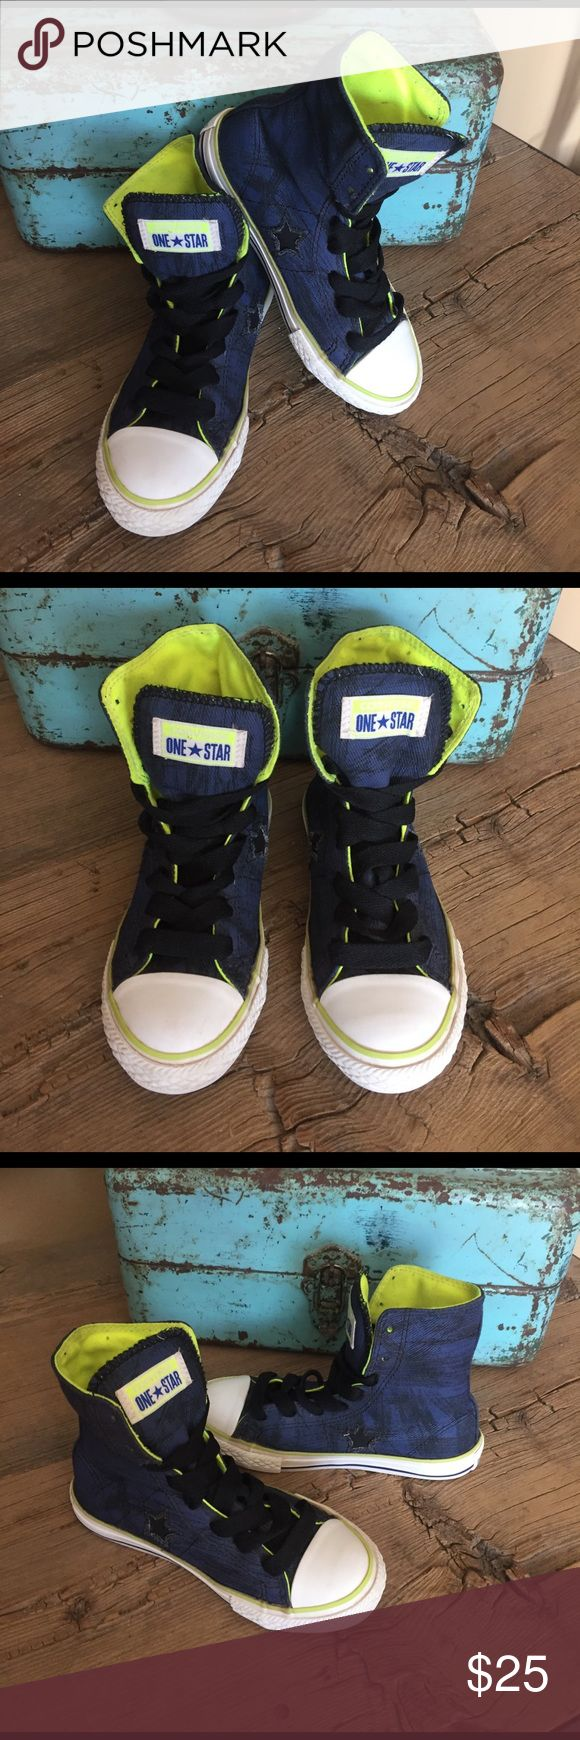 Converse One Star High Tops Size 13. Navy with Black design last photo shows you what they look like up close. Neon green inside. Great shoes! Gently worn and plenty of use left in these as shown in all photos. Could be worn by girl or boy. Converse Shoes Sneakers